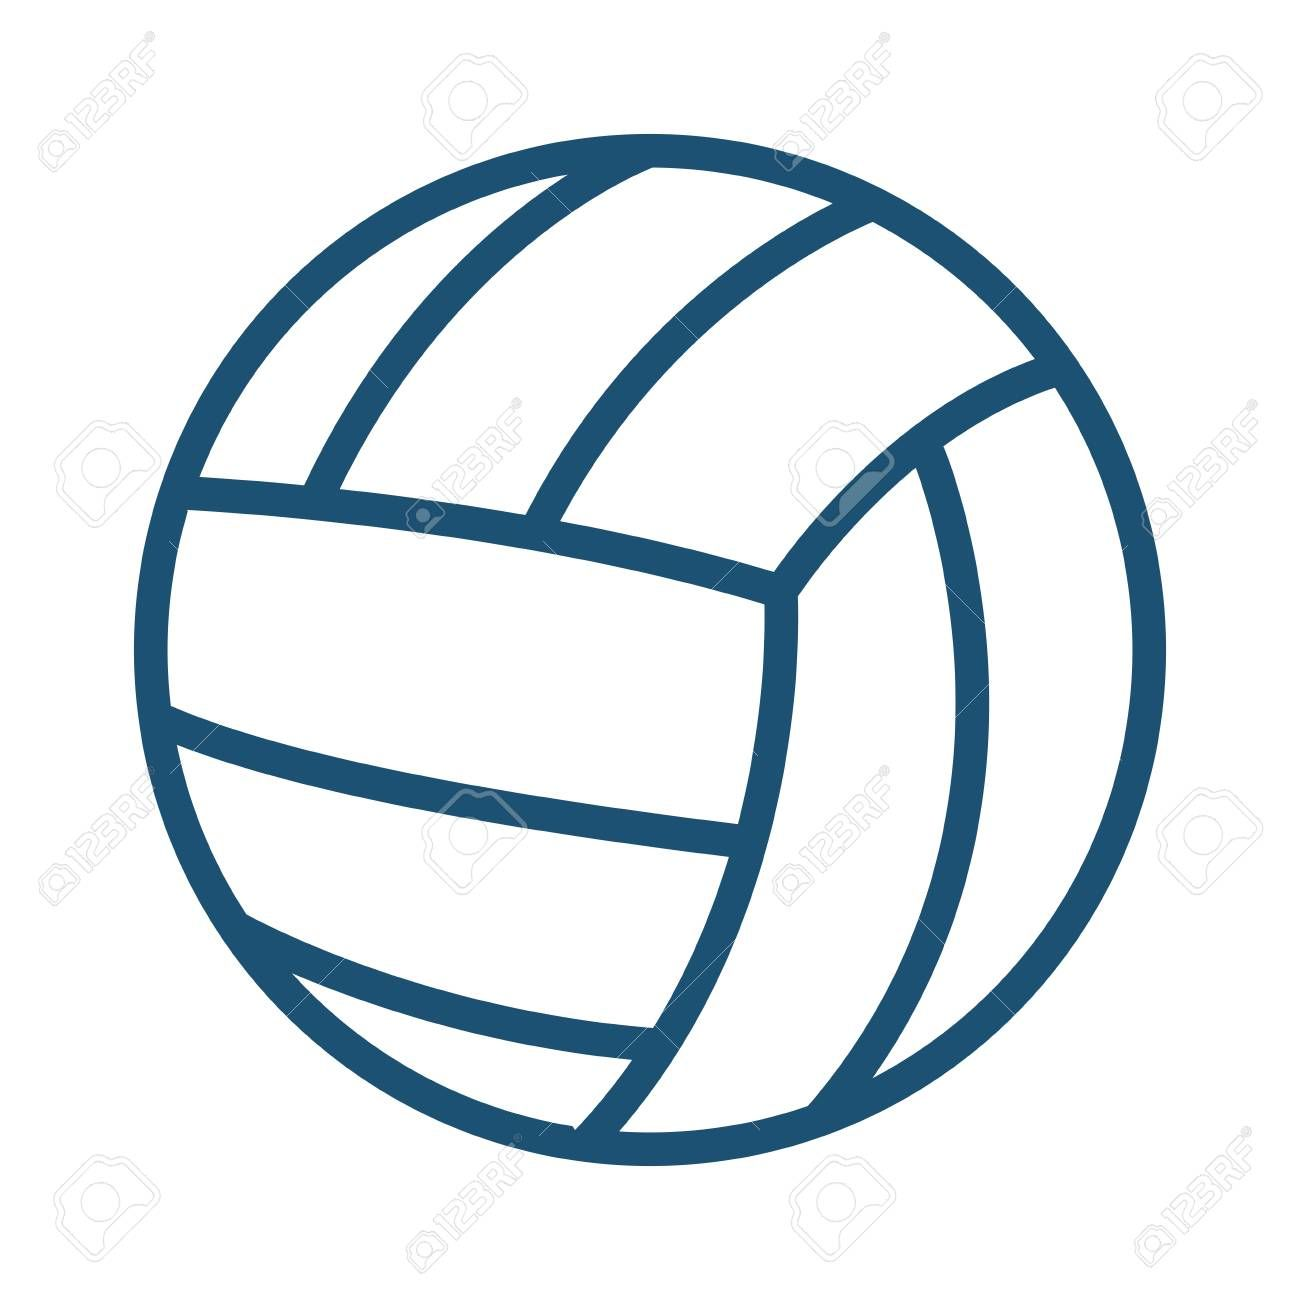 Volleyball Balloon Isolated Icon Vector Illustration Design Illustration Affiliate Isolated Vector Illustration Design Illustration Design Anime Artwork